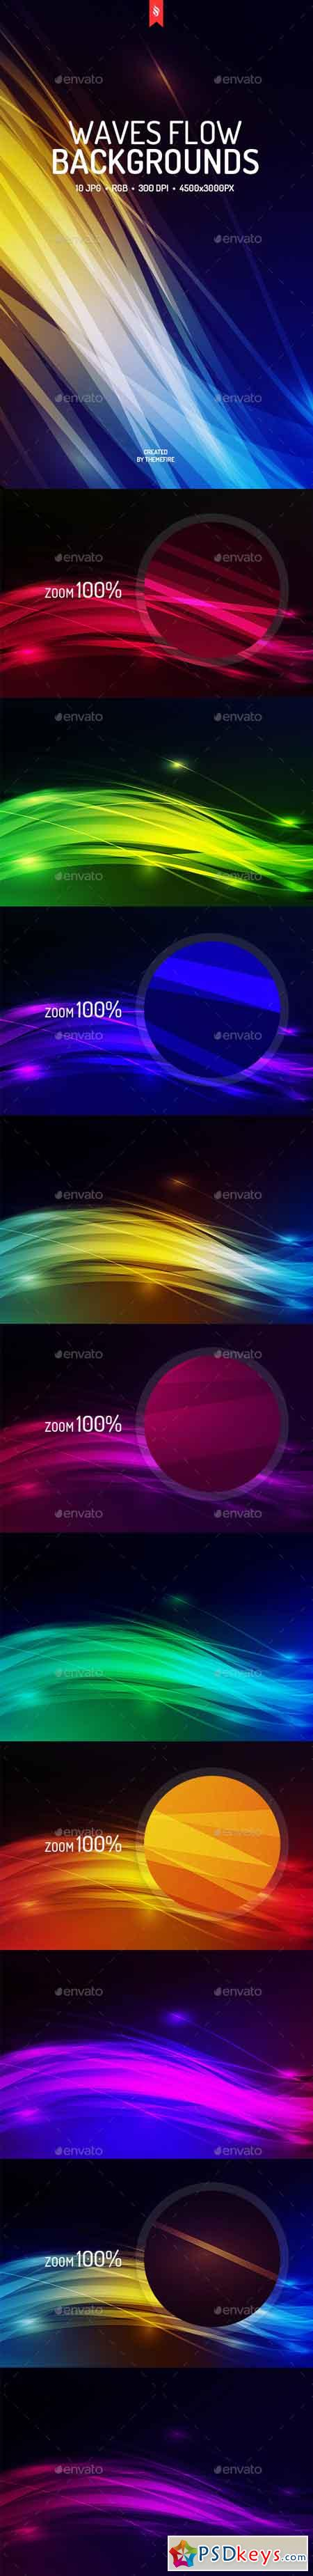 Abstract Waves Flow Backgrounds 19197323